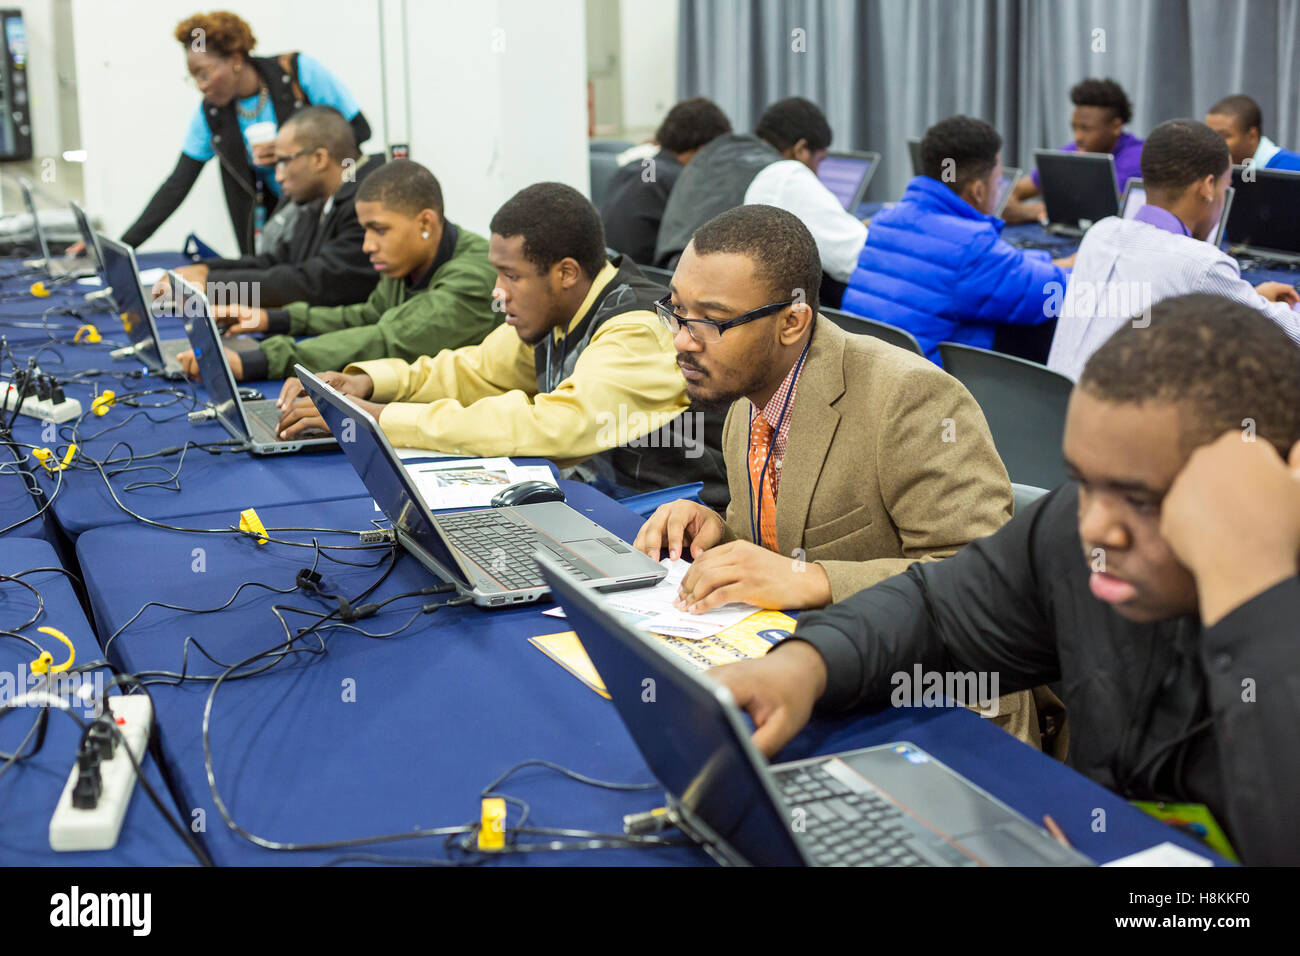 detroit united states 14th nov 2016 detroit michigan young detroit michigan young african american men apply for jobs online at a job fair sponsored by the nonprofit my brother s keeper